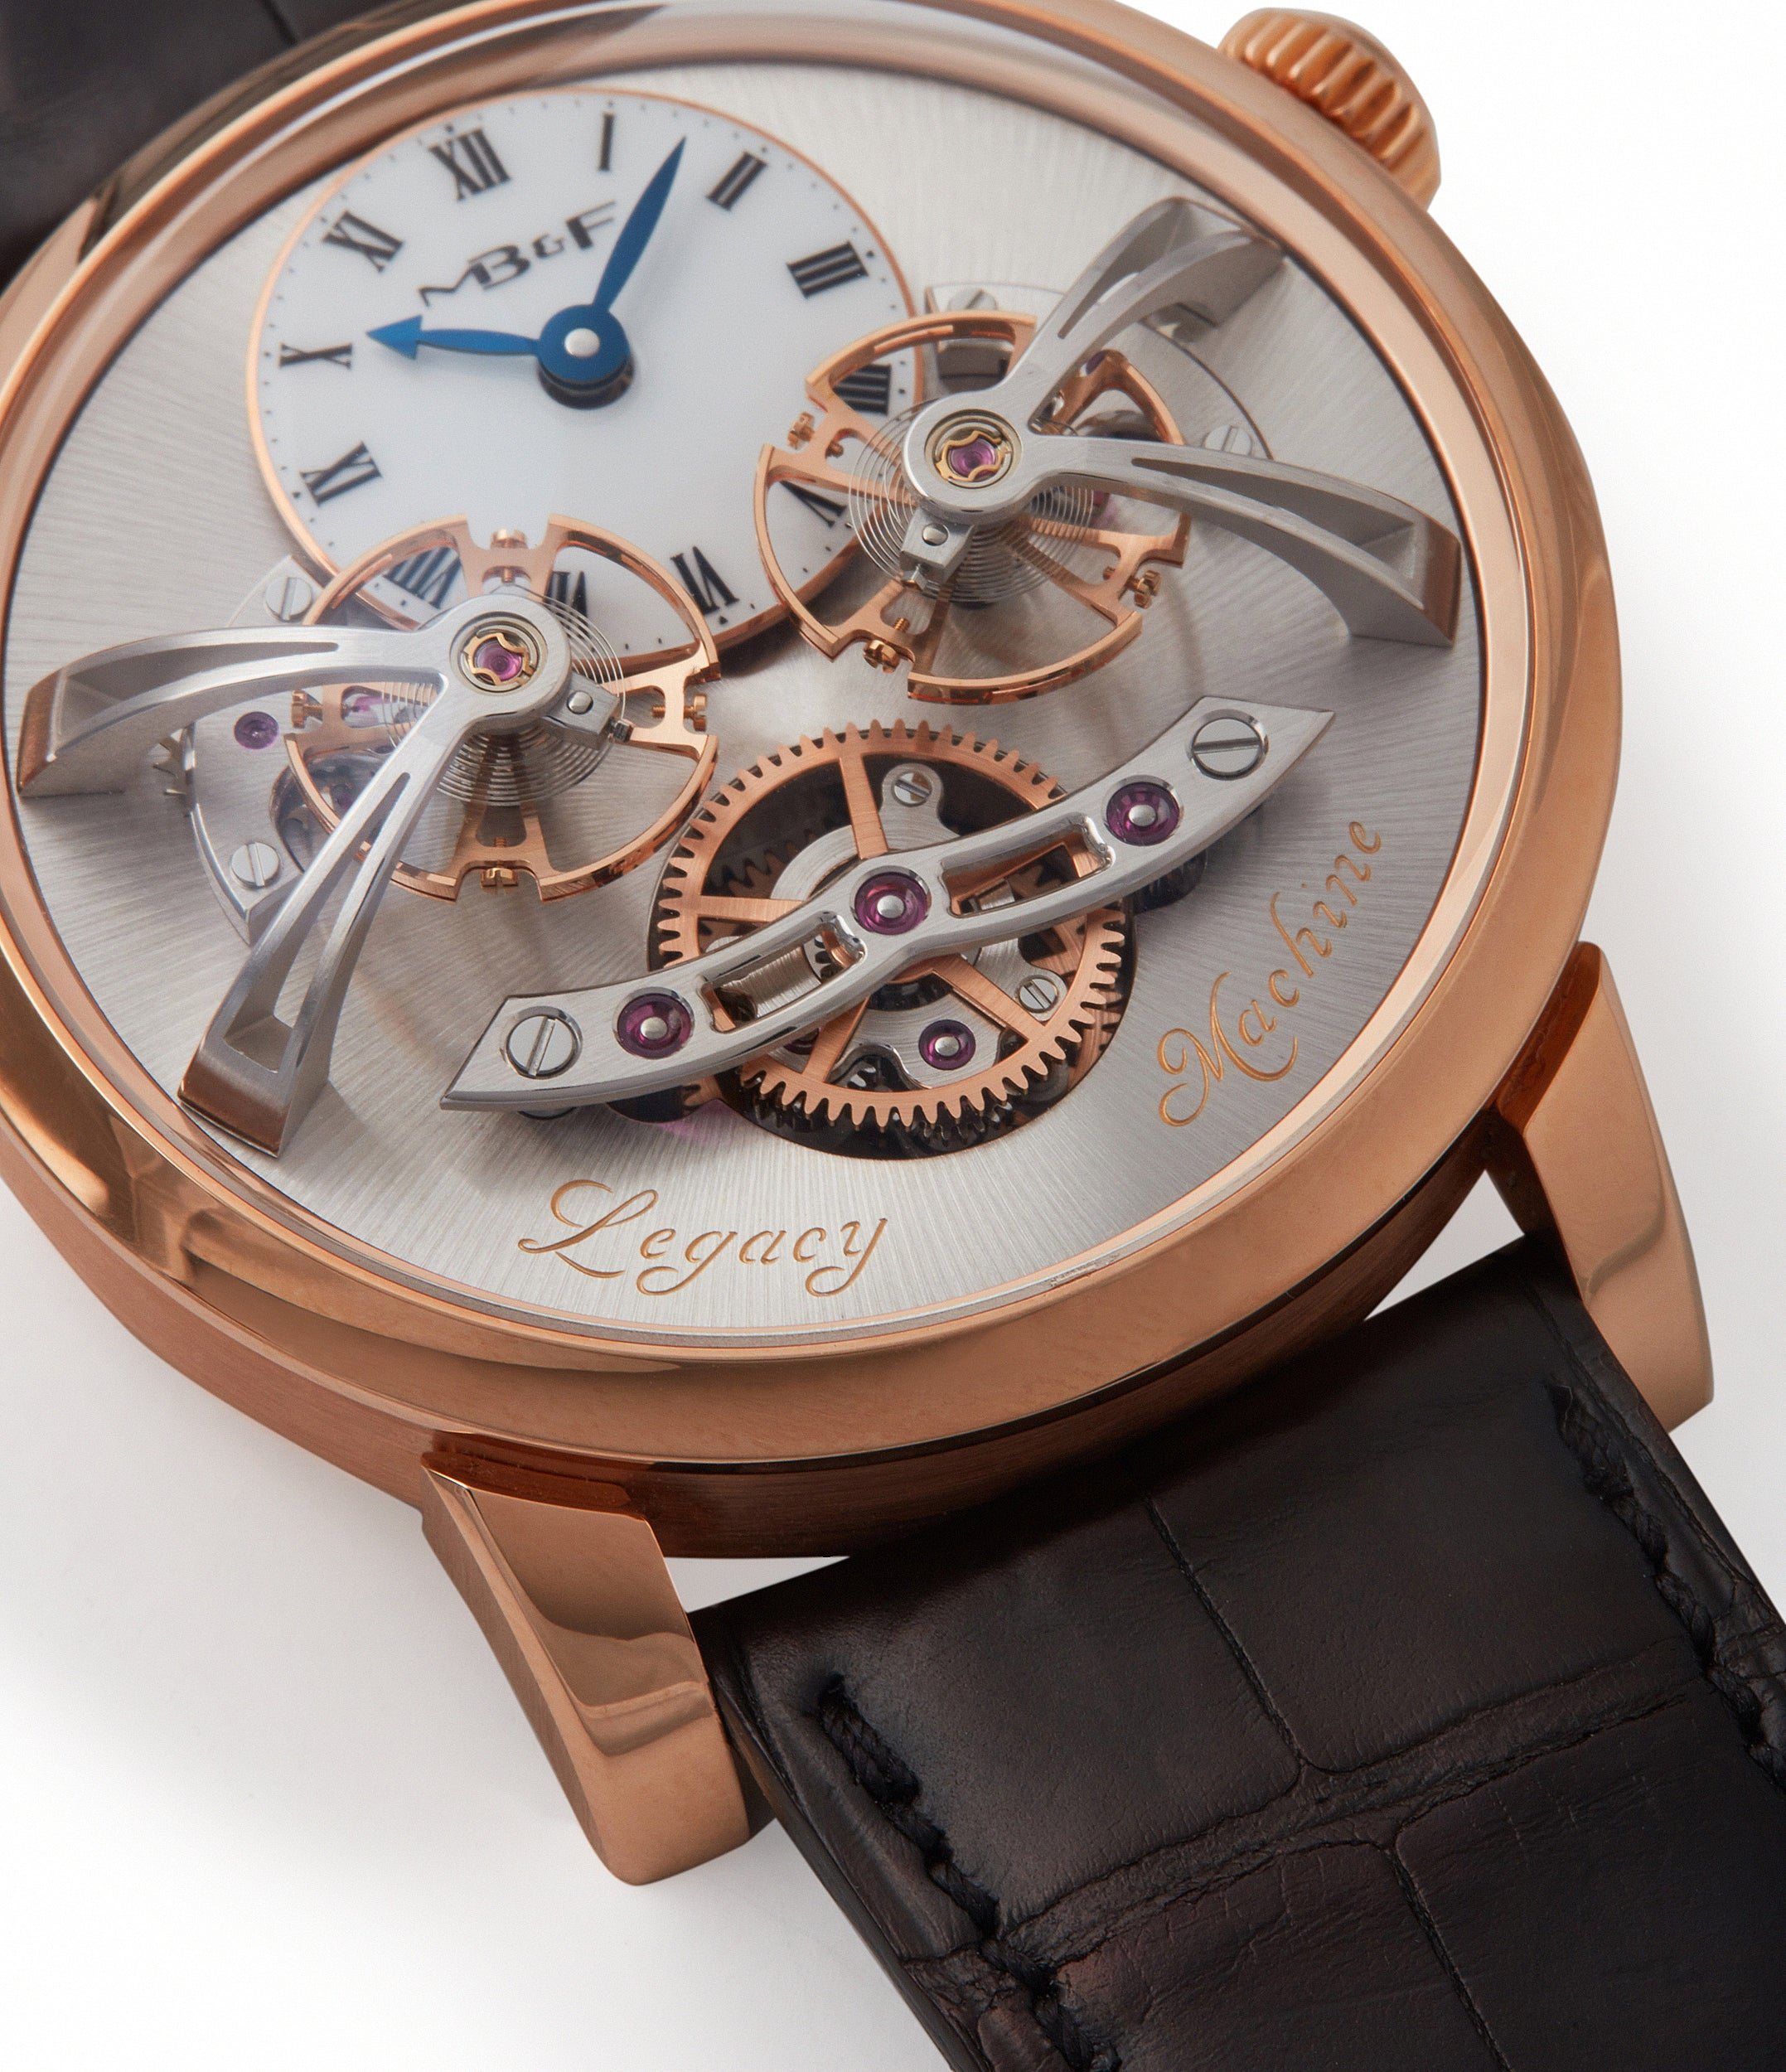 double flying balance MB&F Legacy Machine LM2 rose gold watch by independent watchmaker Max Busser Kari Voutilainen Mojon for sale at A Collected Man London UK specialist rare watches